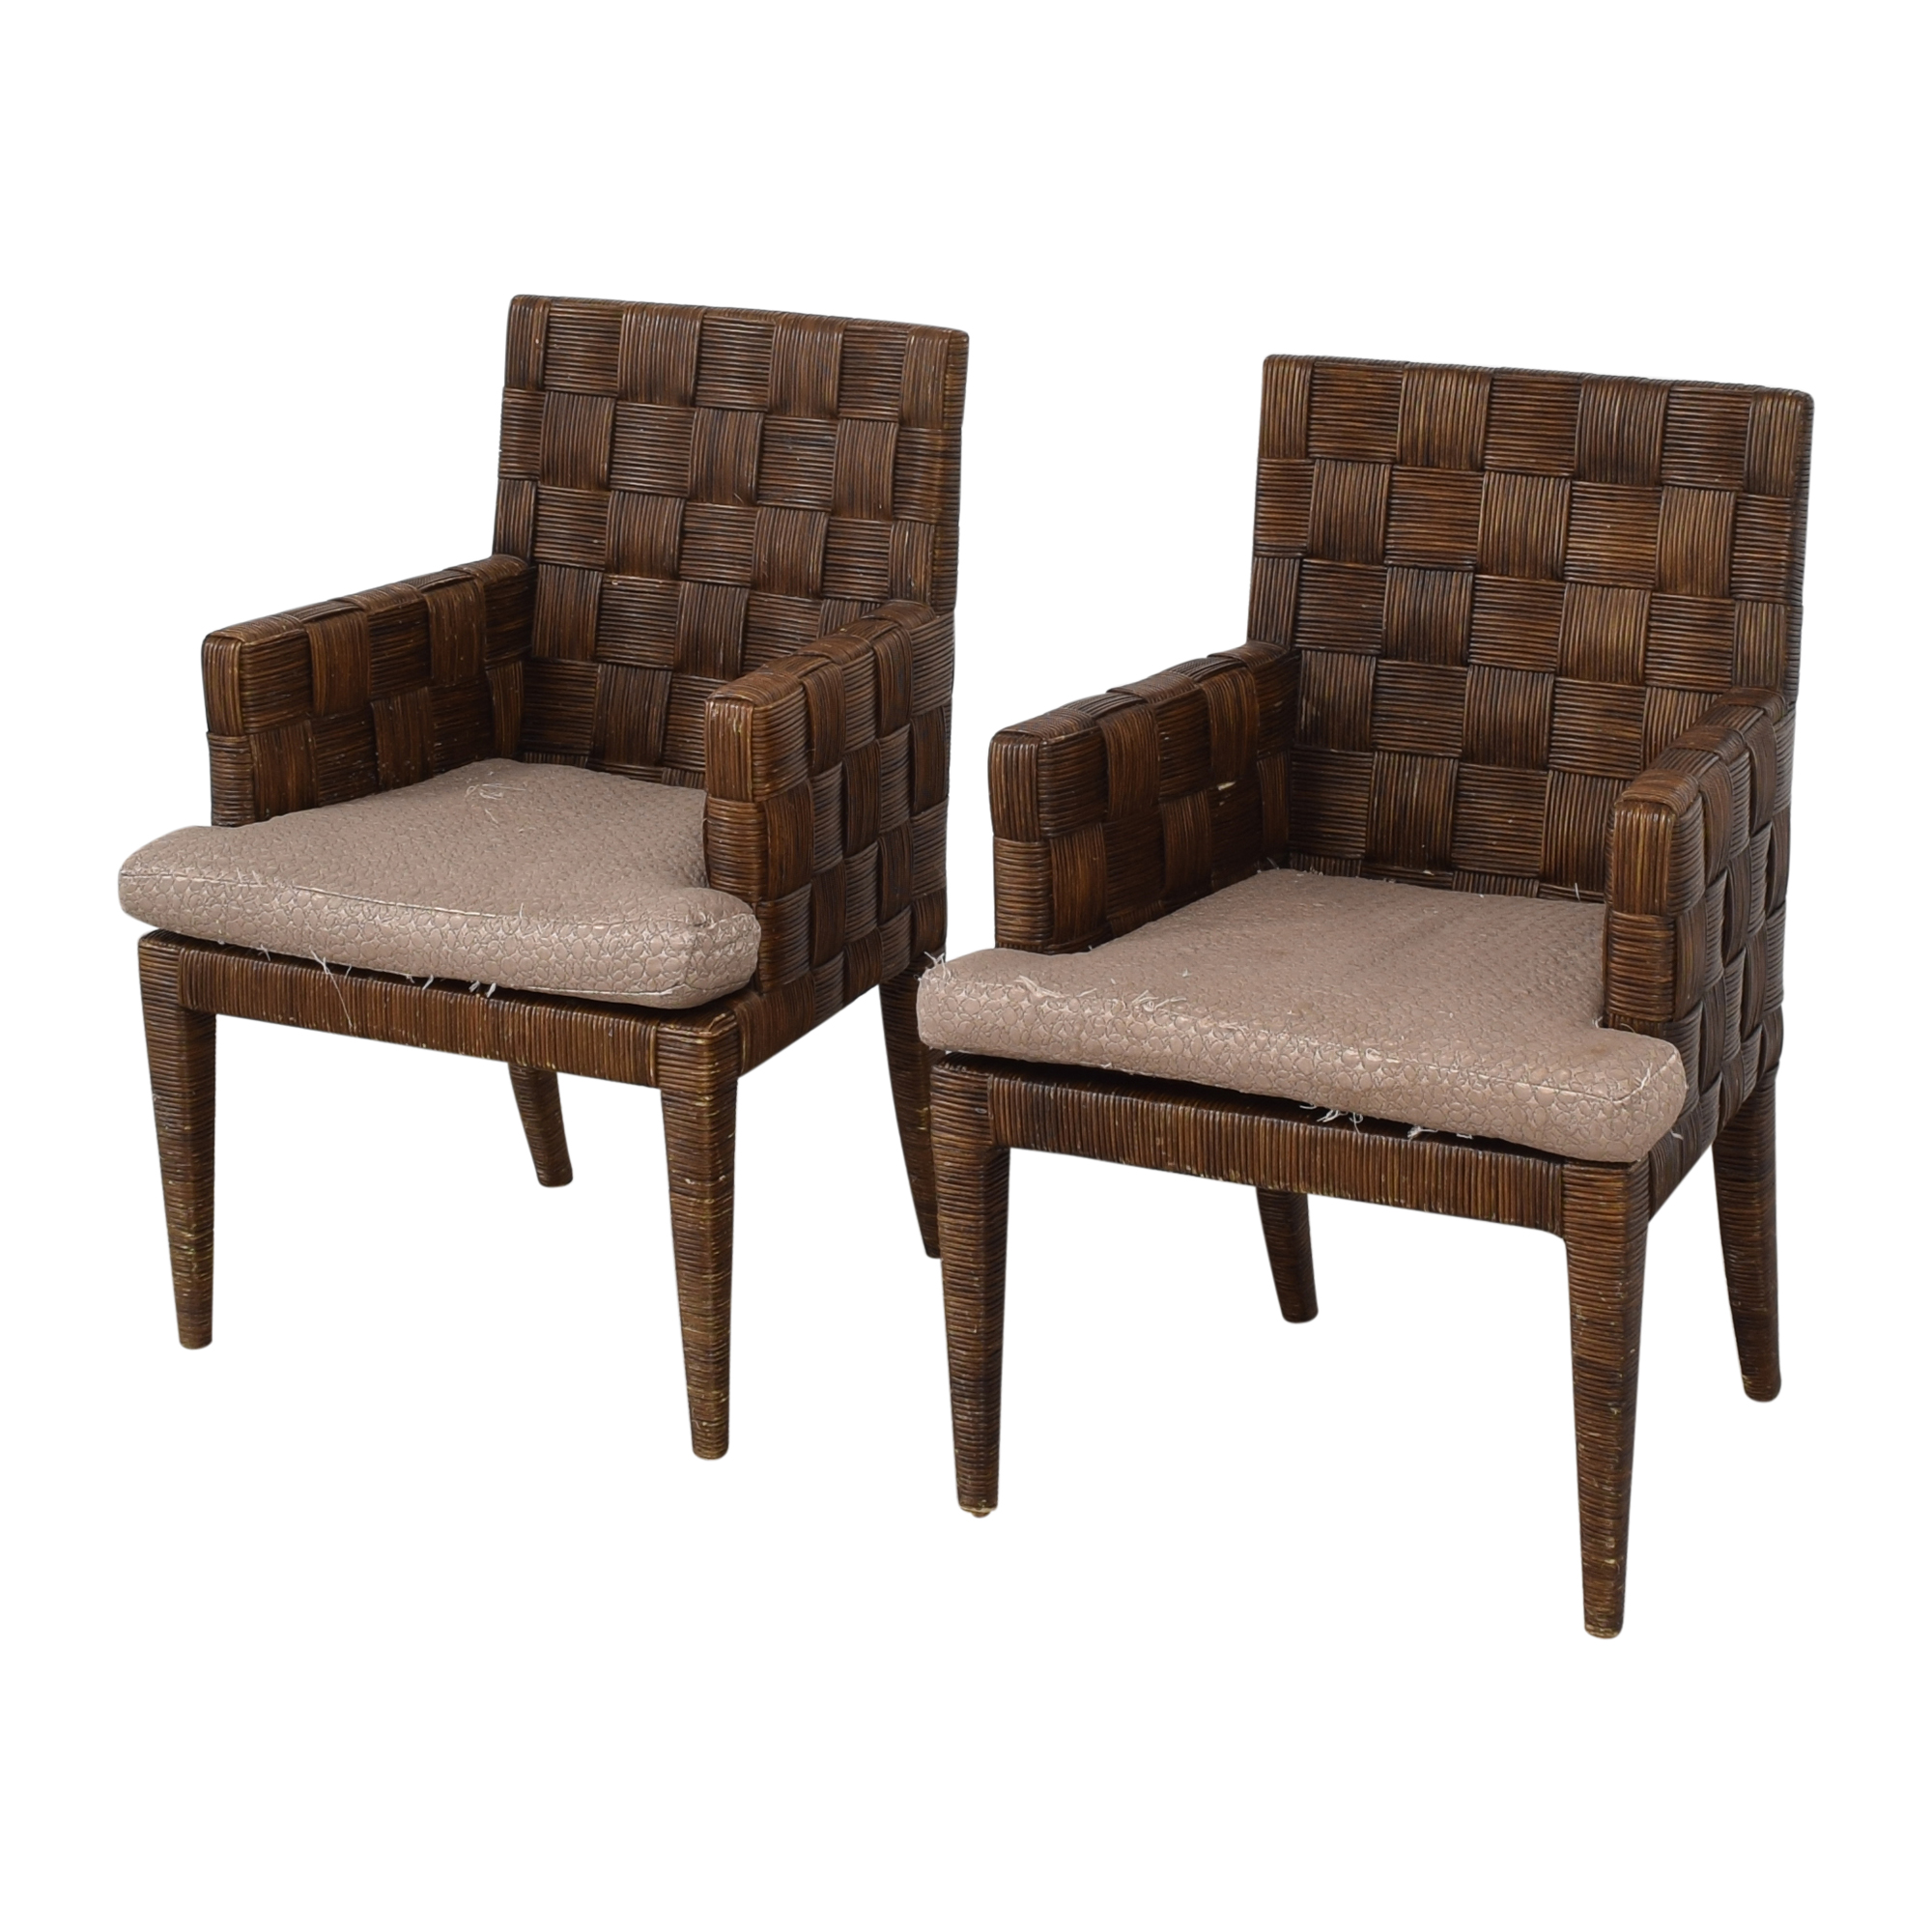 shop Donghia by John Hutton Block Island Dining Armchairs Donghia Chairs